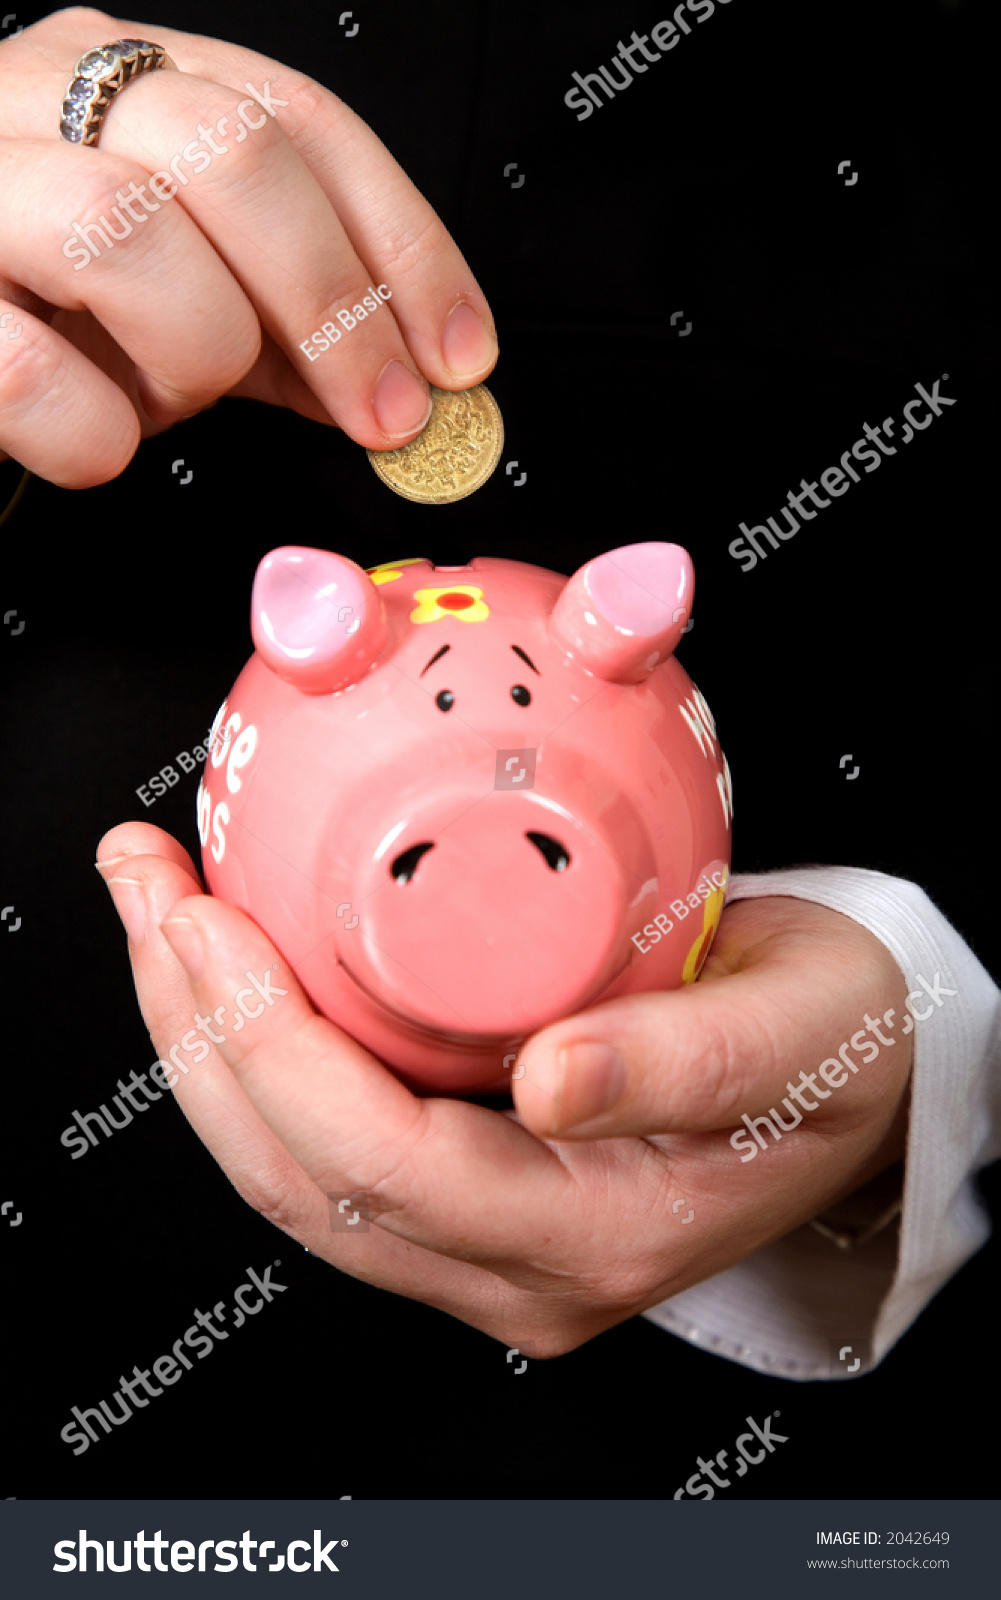 how to get a coin out of a piggy bank